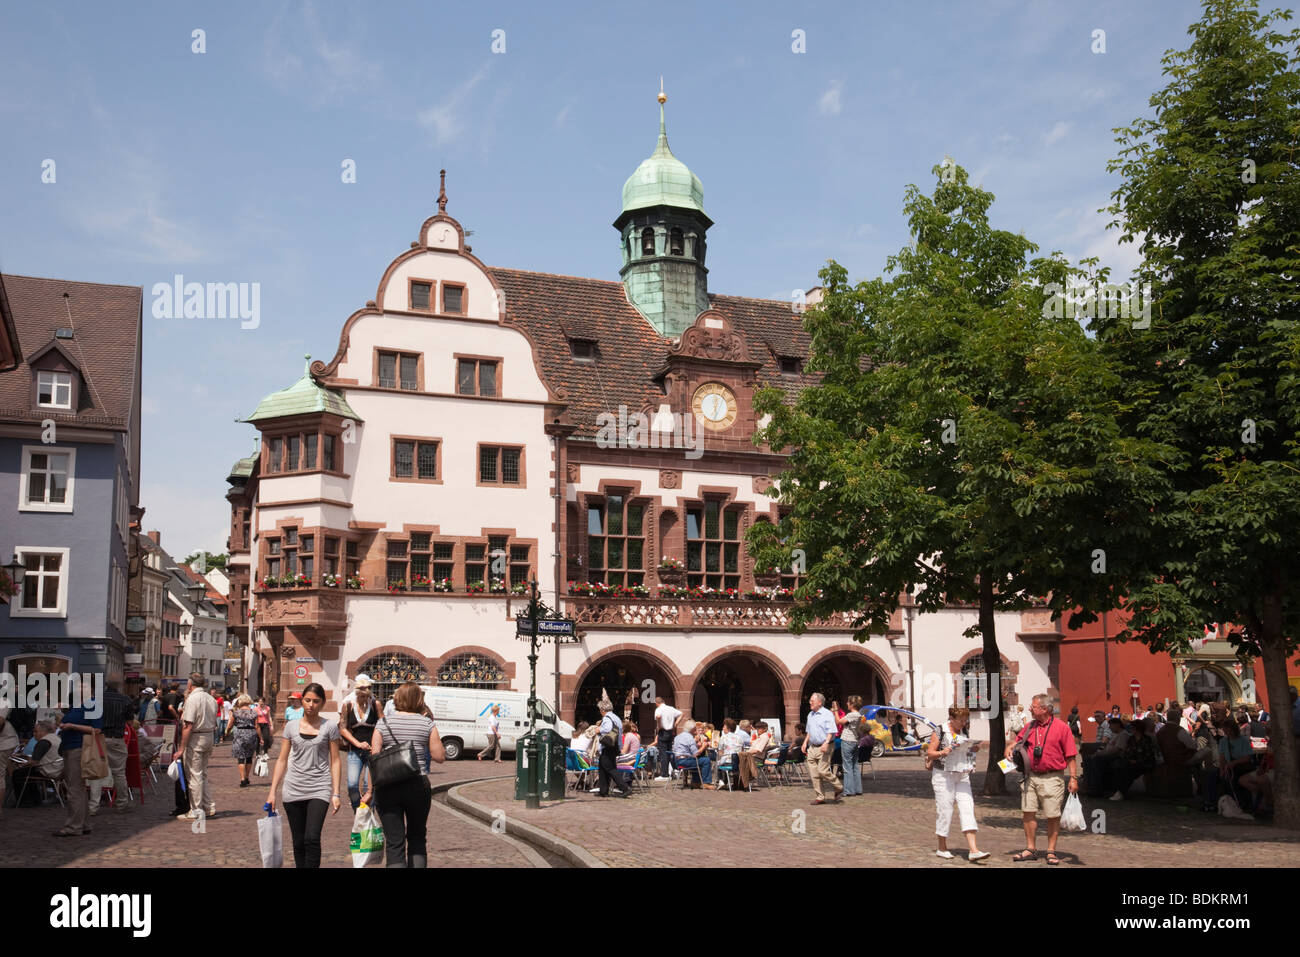 freiburg breisgau baden wurttemberg germany busy square by 16th stock photo royalty free. Black Bedroom Furniture Sets. Home Design Ideas